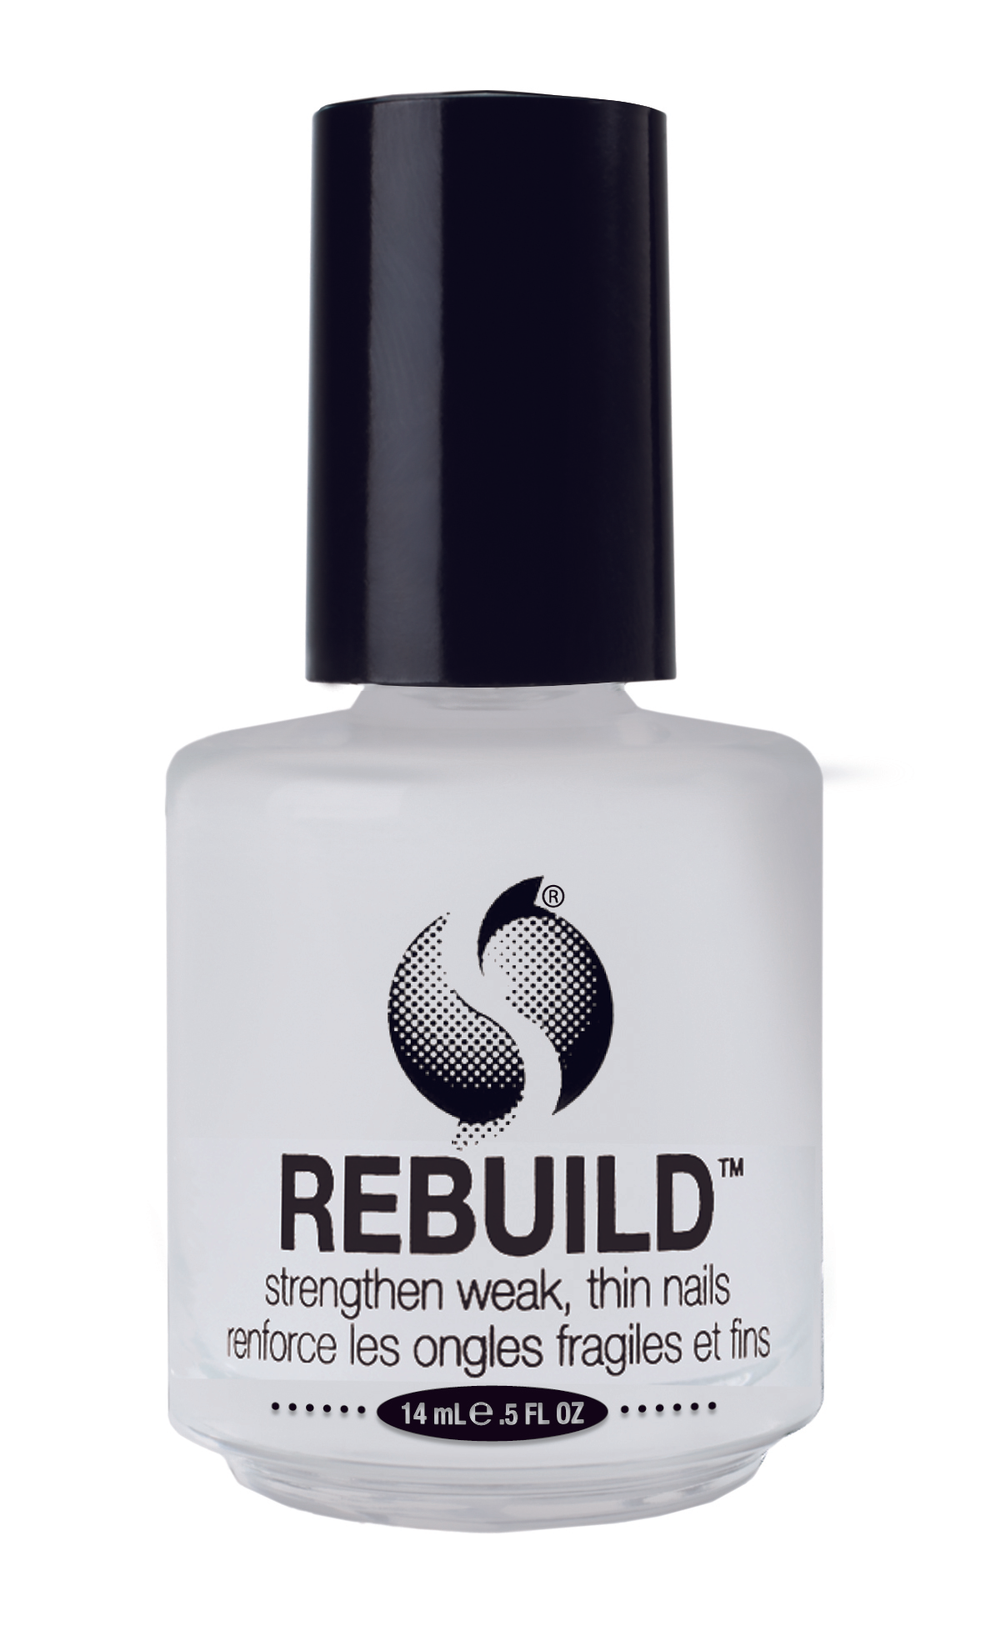 """<p>Seche Rebuild strengthens weak, thin nails. This unique protein formulation seals the layers of the natural nail together, reinforcing and thickening nails with each application. Use regularly as a base coat or alone to provide durability while promoting strength and flexibility. <br /><a href=""""http://www.seche.com"""">www.seche.com</a></p>"""